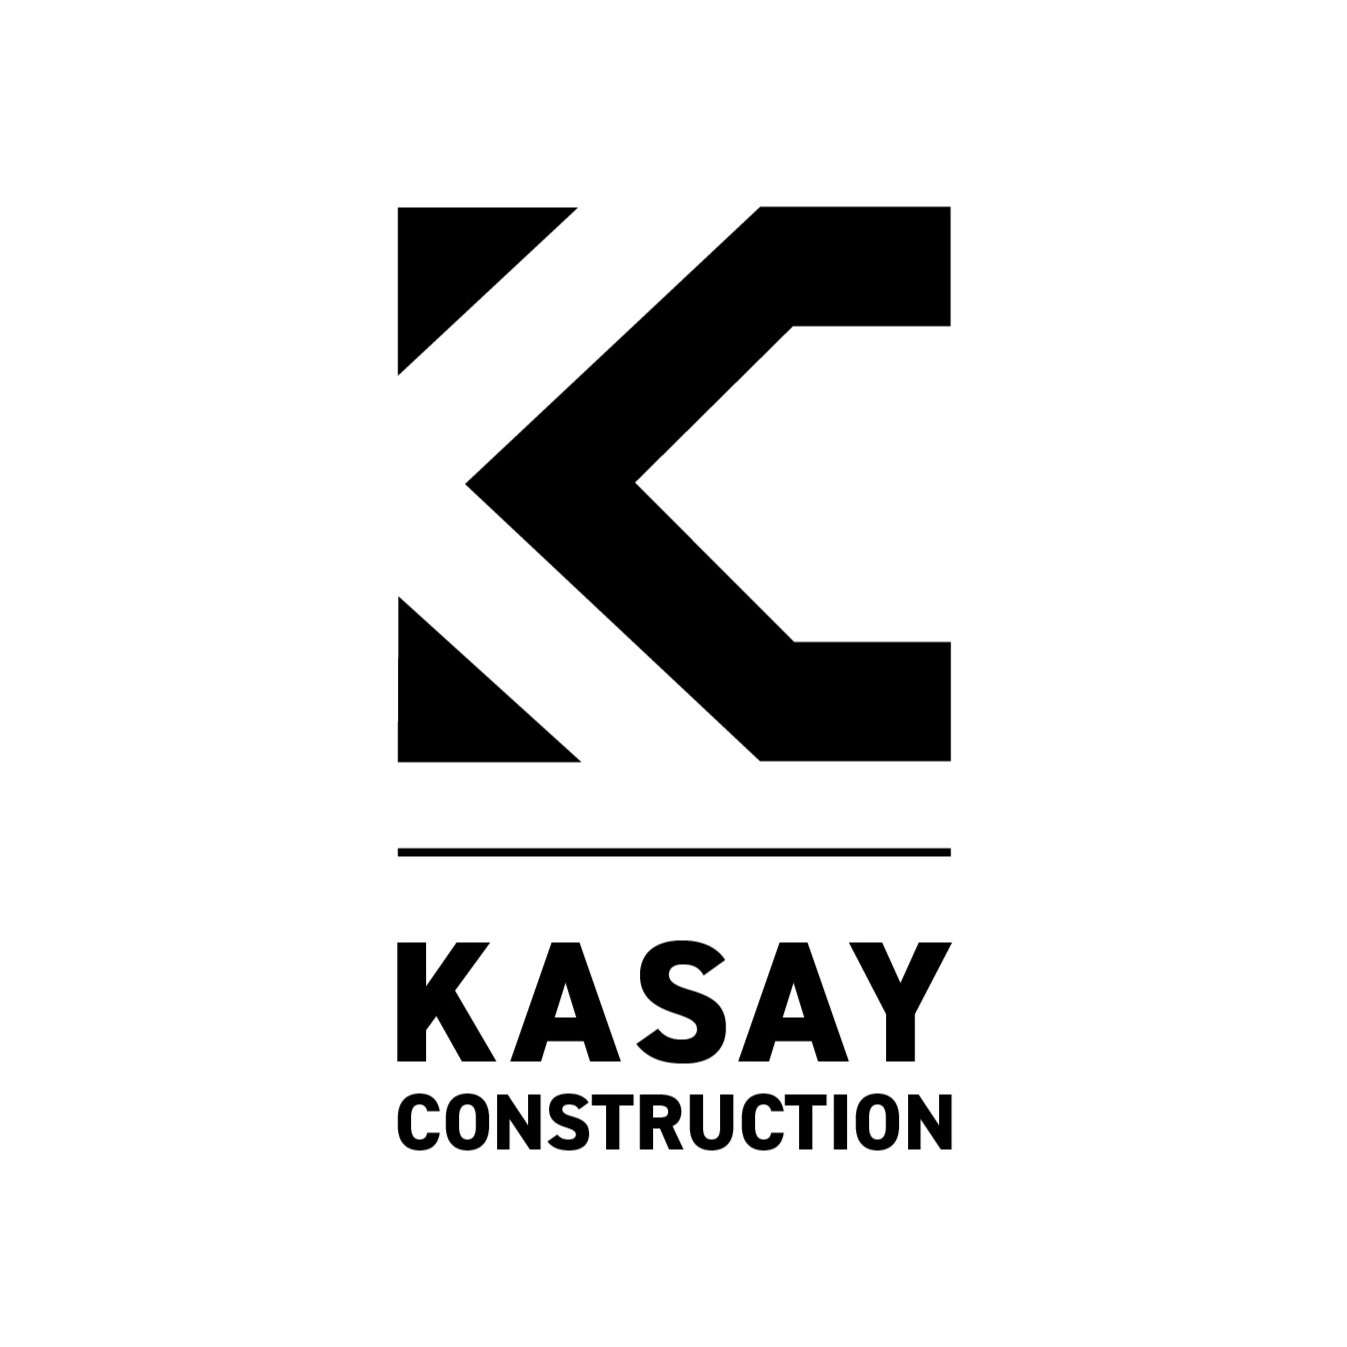 Charlotte Residential and Commercial Contractor  - Kasay Construction